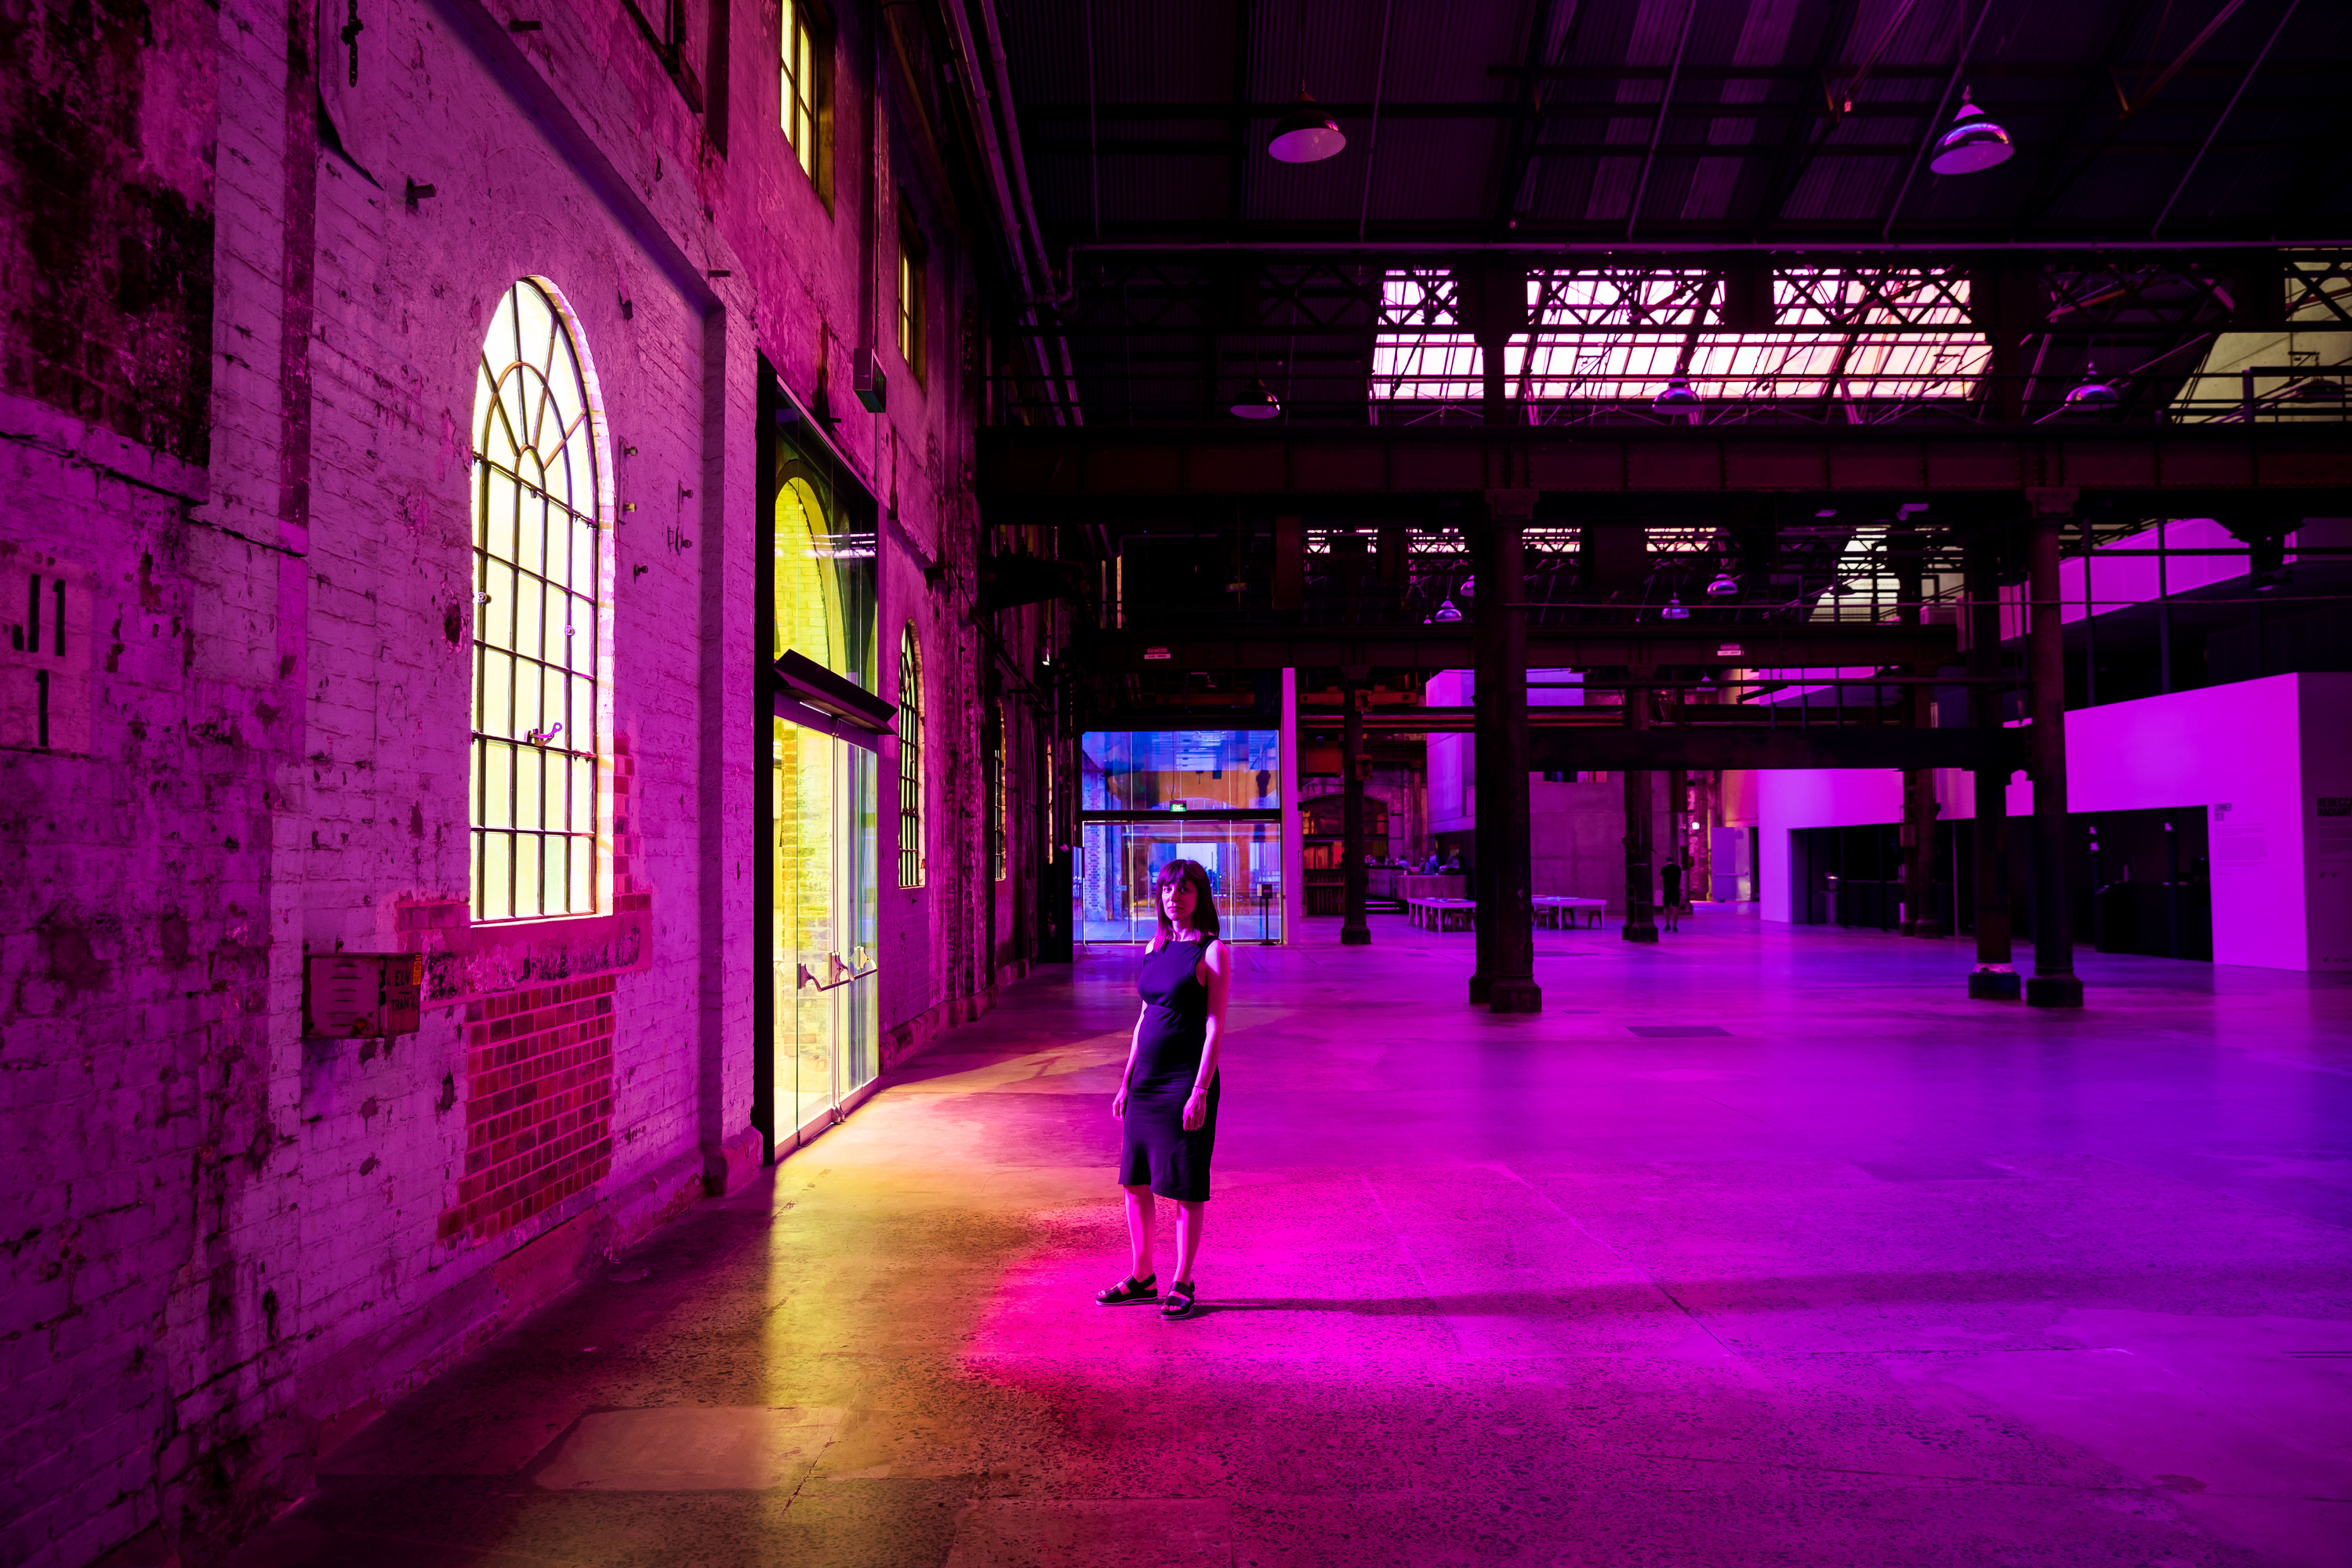 Carriageworks has been turned into a colourful kaleidoscope thanks to this 100-metre artwork